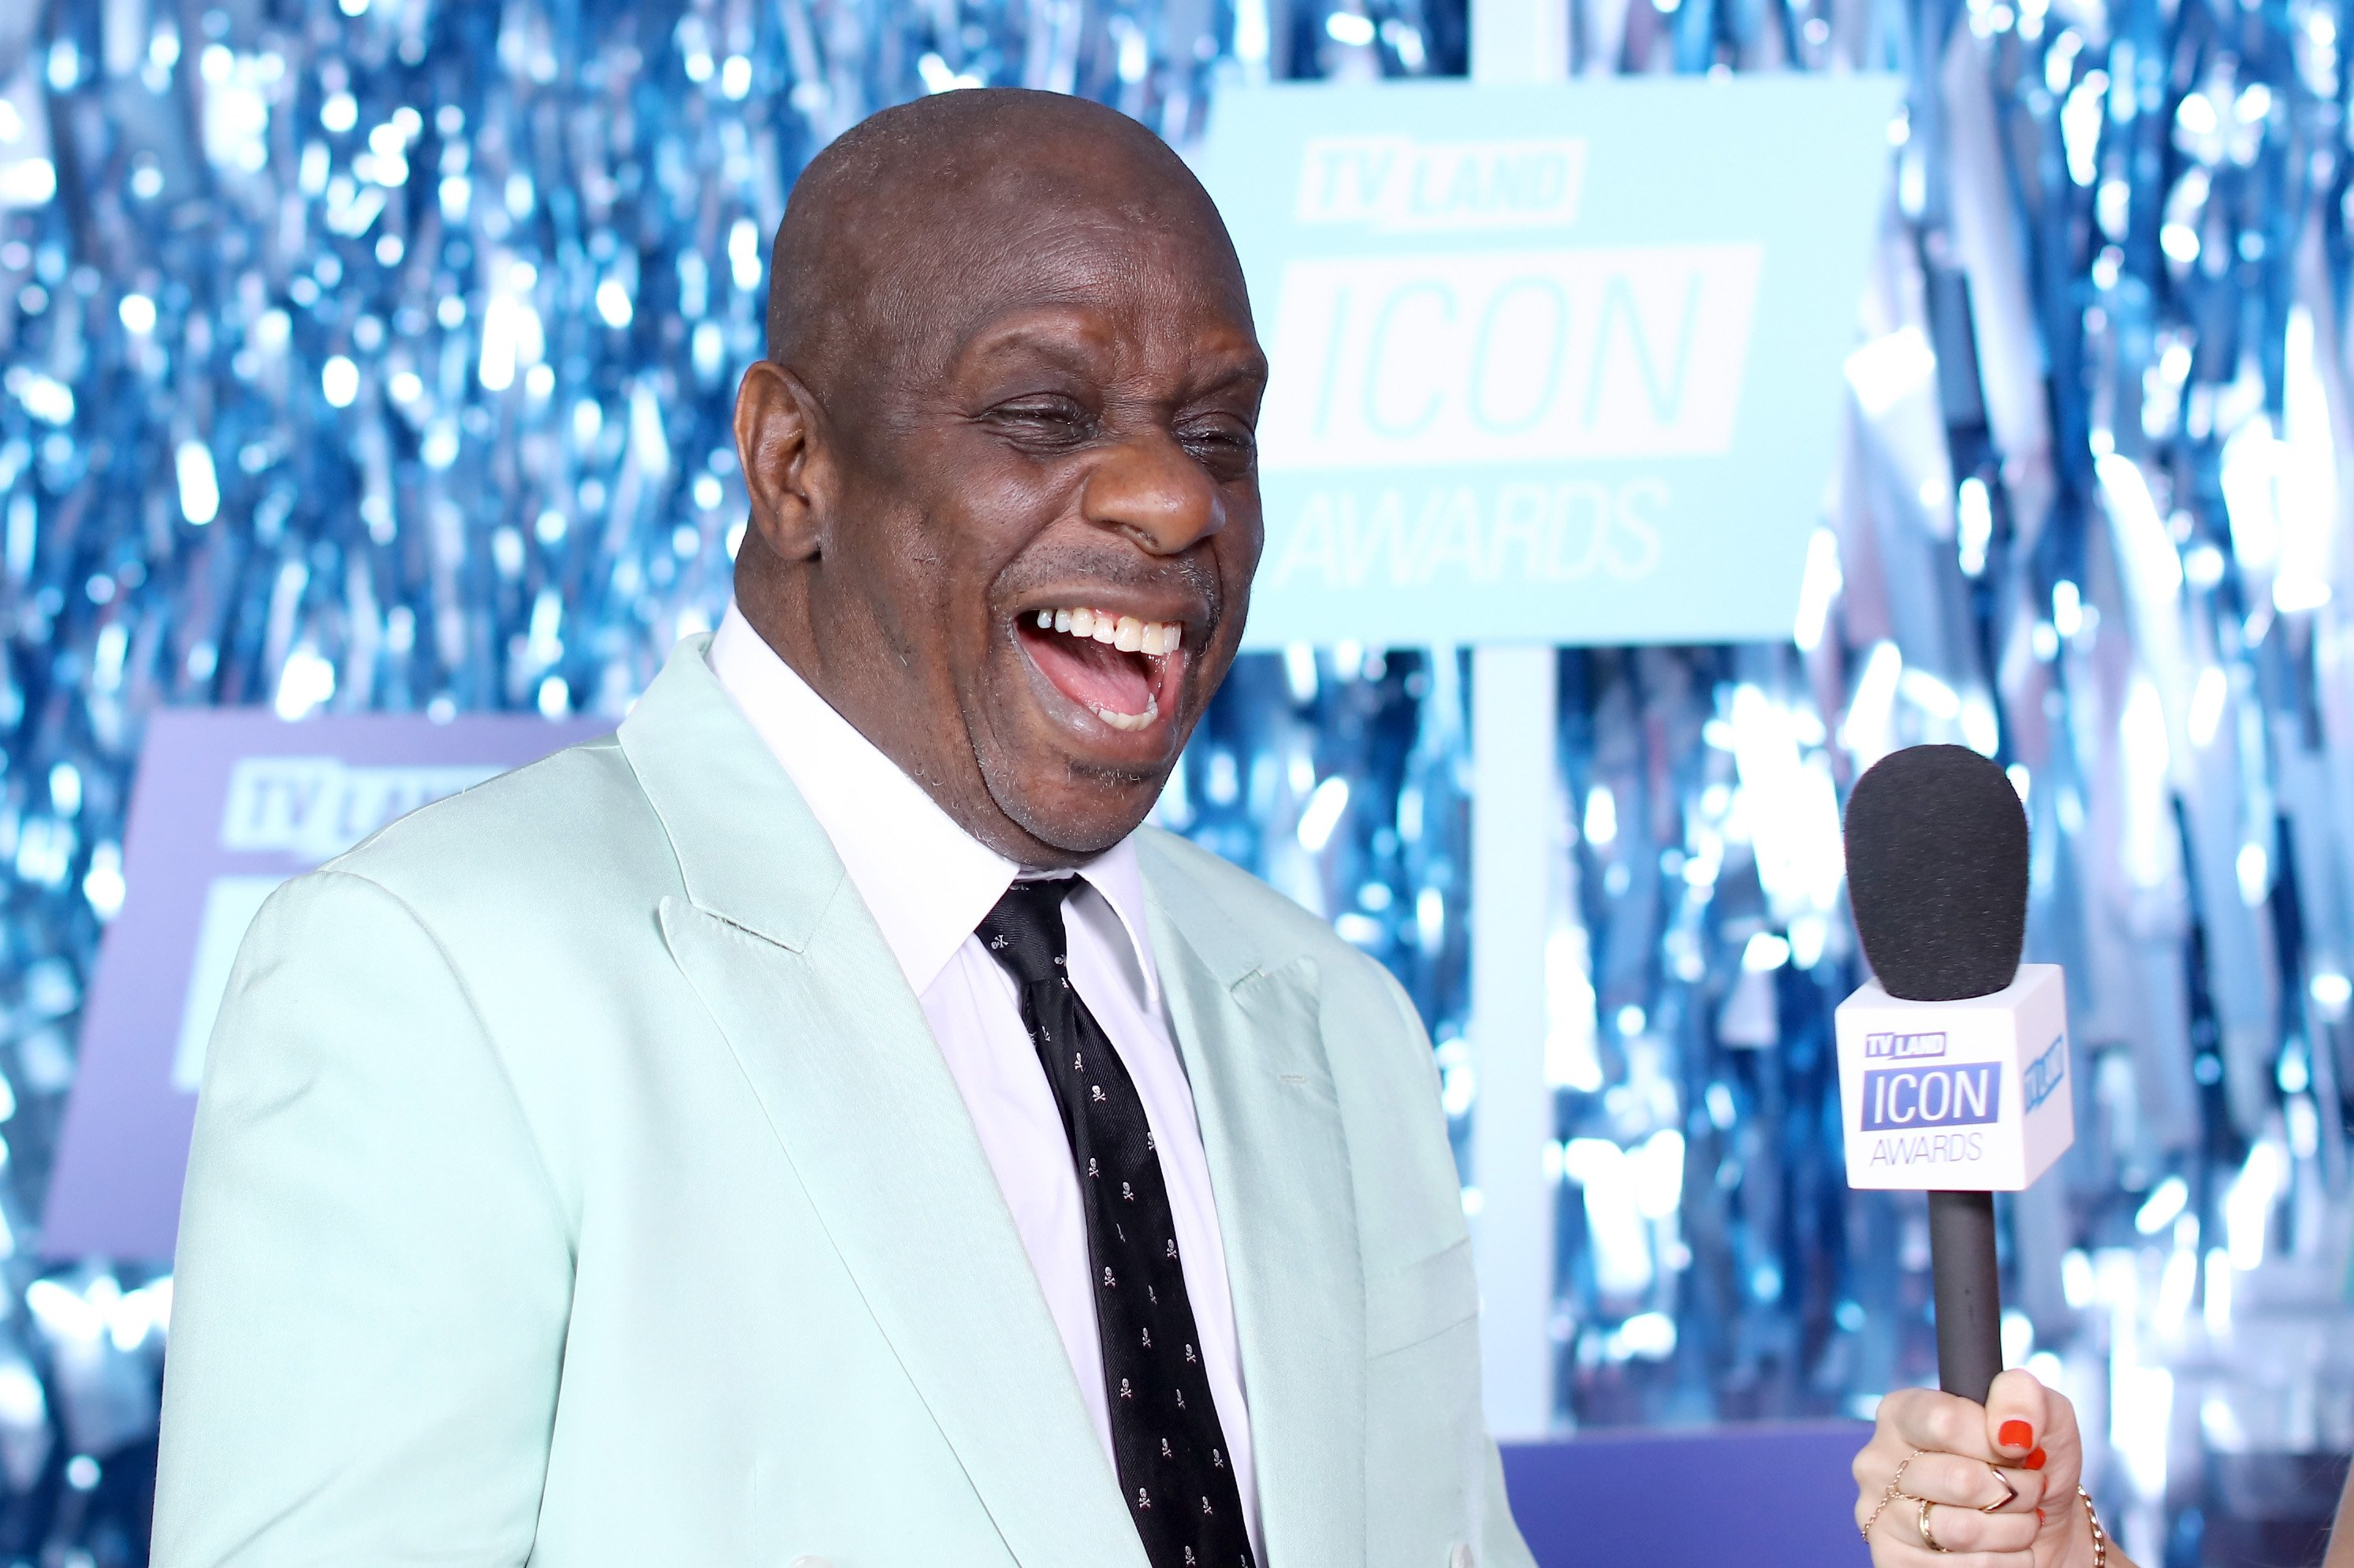 Jimmie Walker at the 2016 TV Land Icon Awards on April 10, 2016 in Santa Monica, California |  Photo: Getty Images